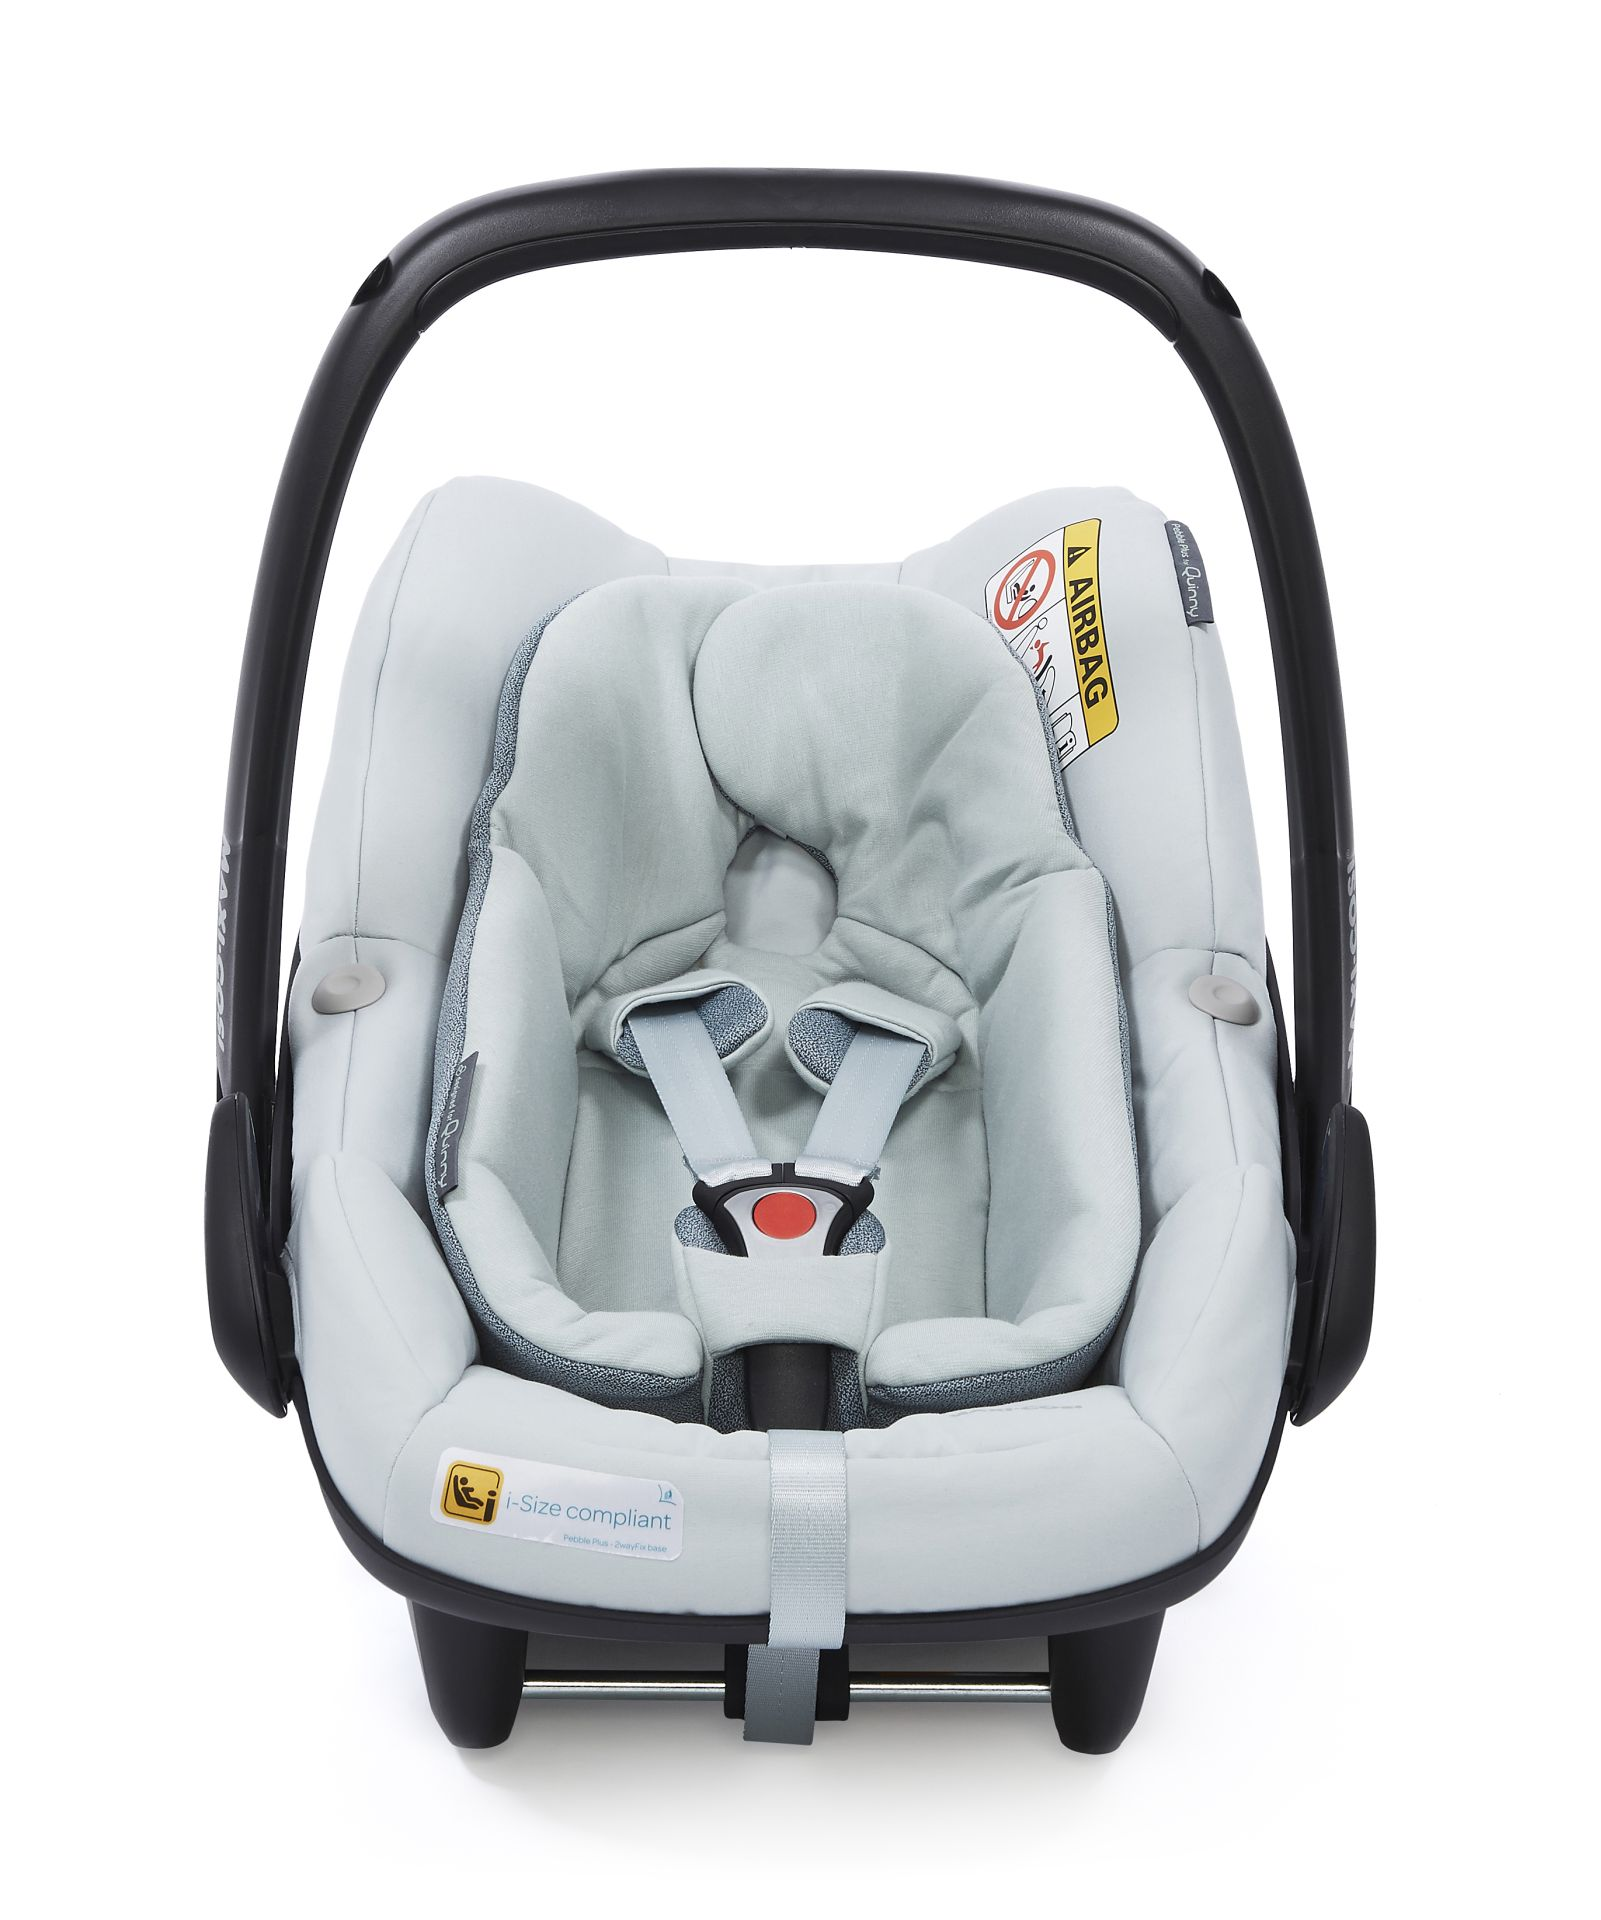 maxi cosi infant car seat pebble plus 2019 grey buy at kidsroom car seats. Black Bedroom Furniture Sets. Home Design Ideas